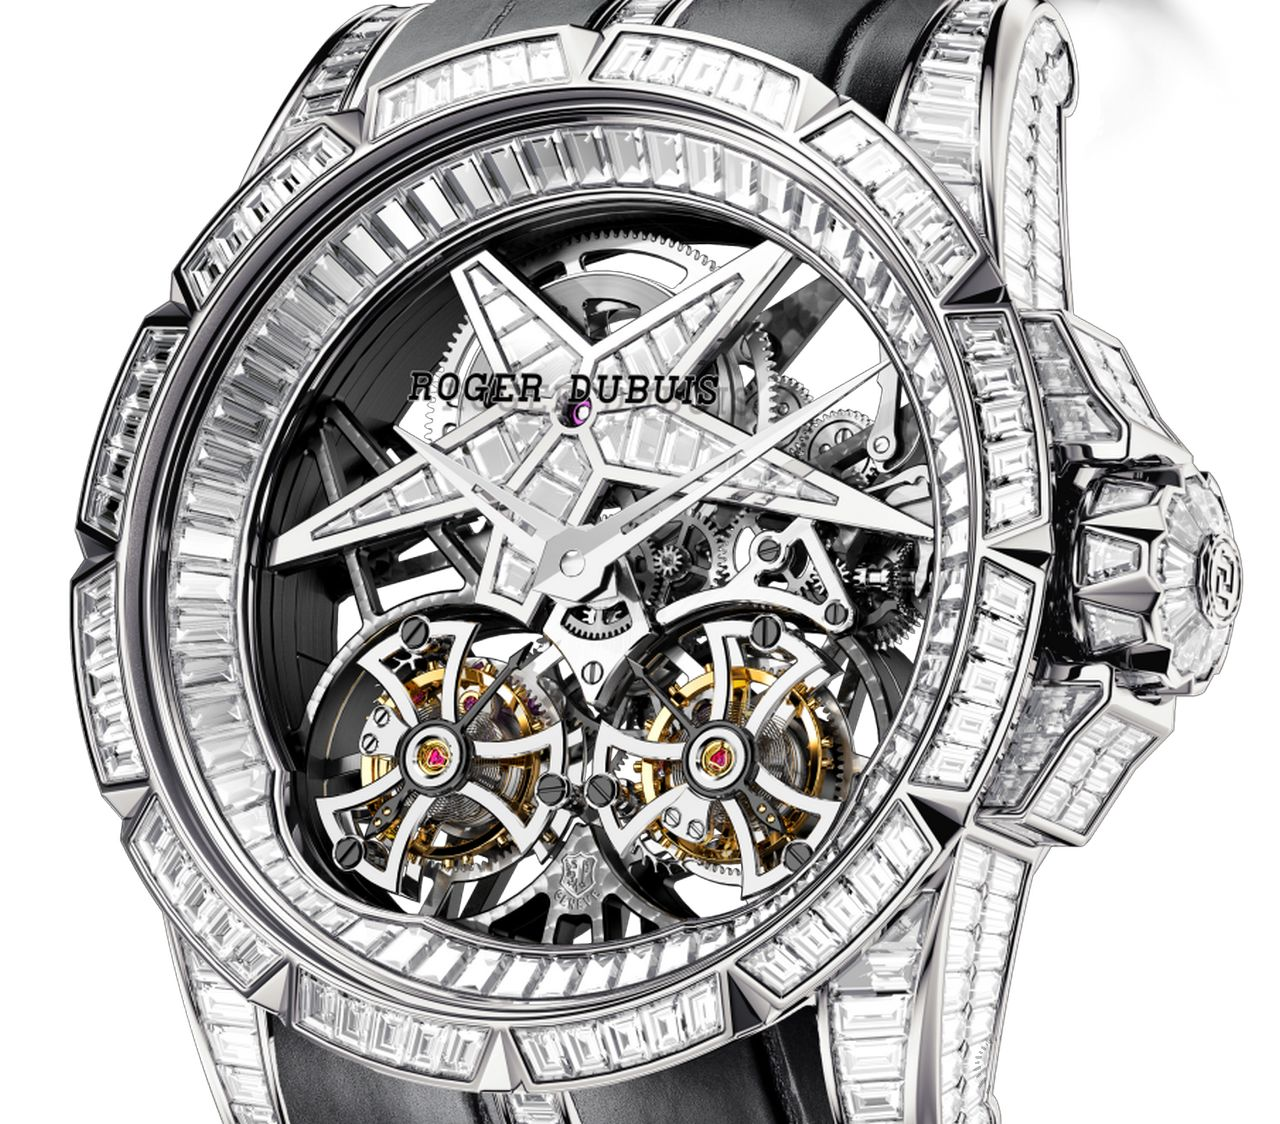 watches-wonders-2015-roger-dubuis-star-of-infinity_0-1001